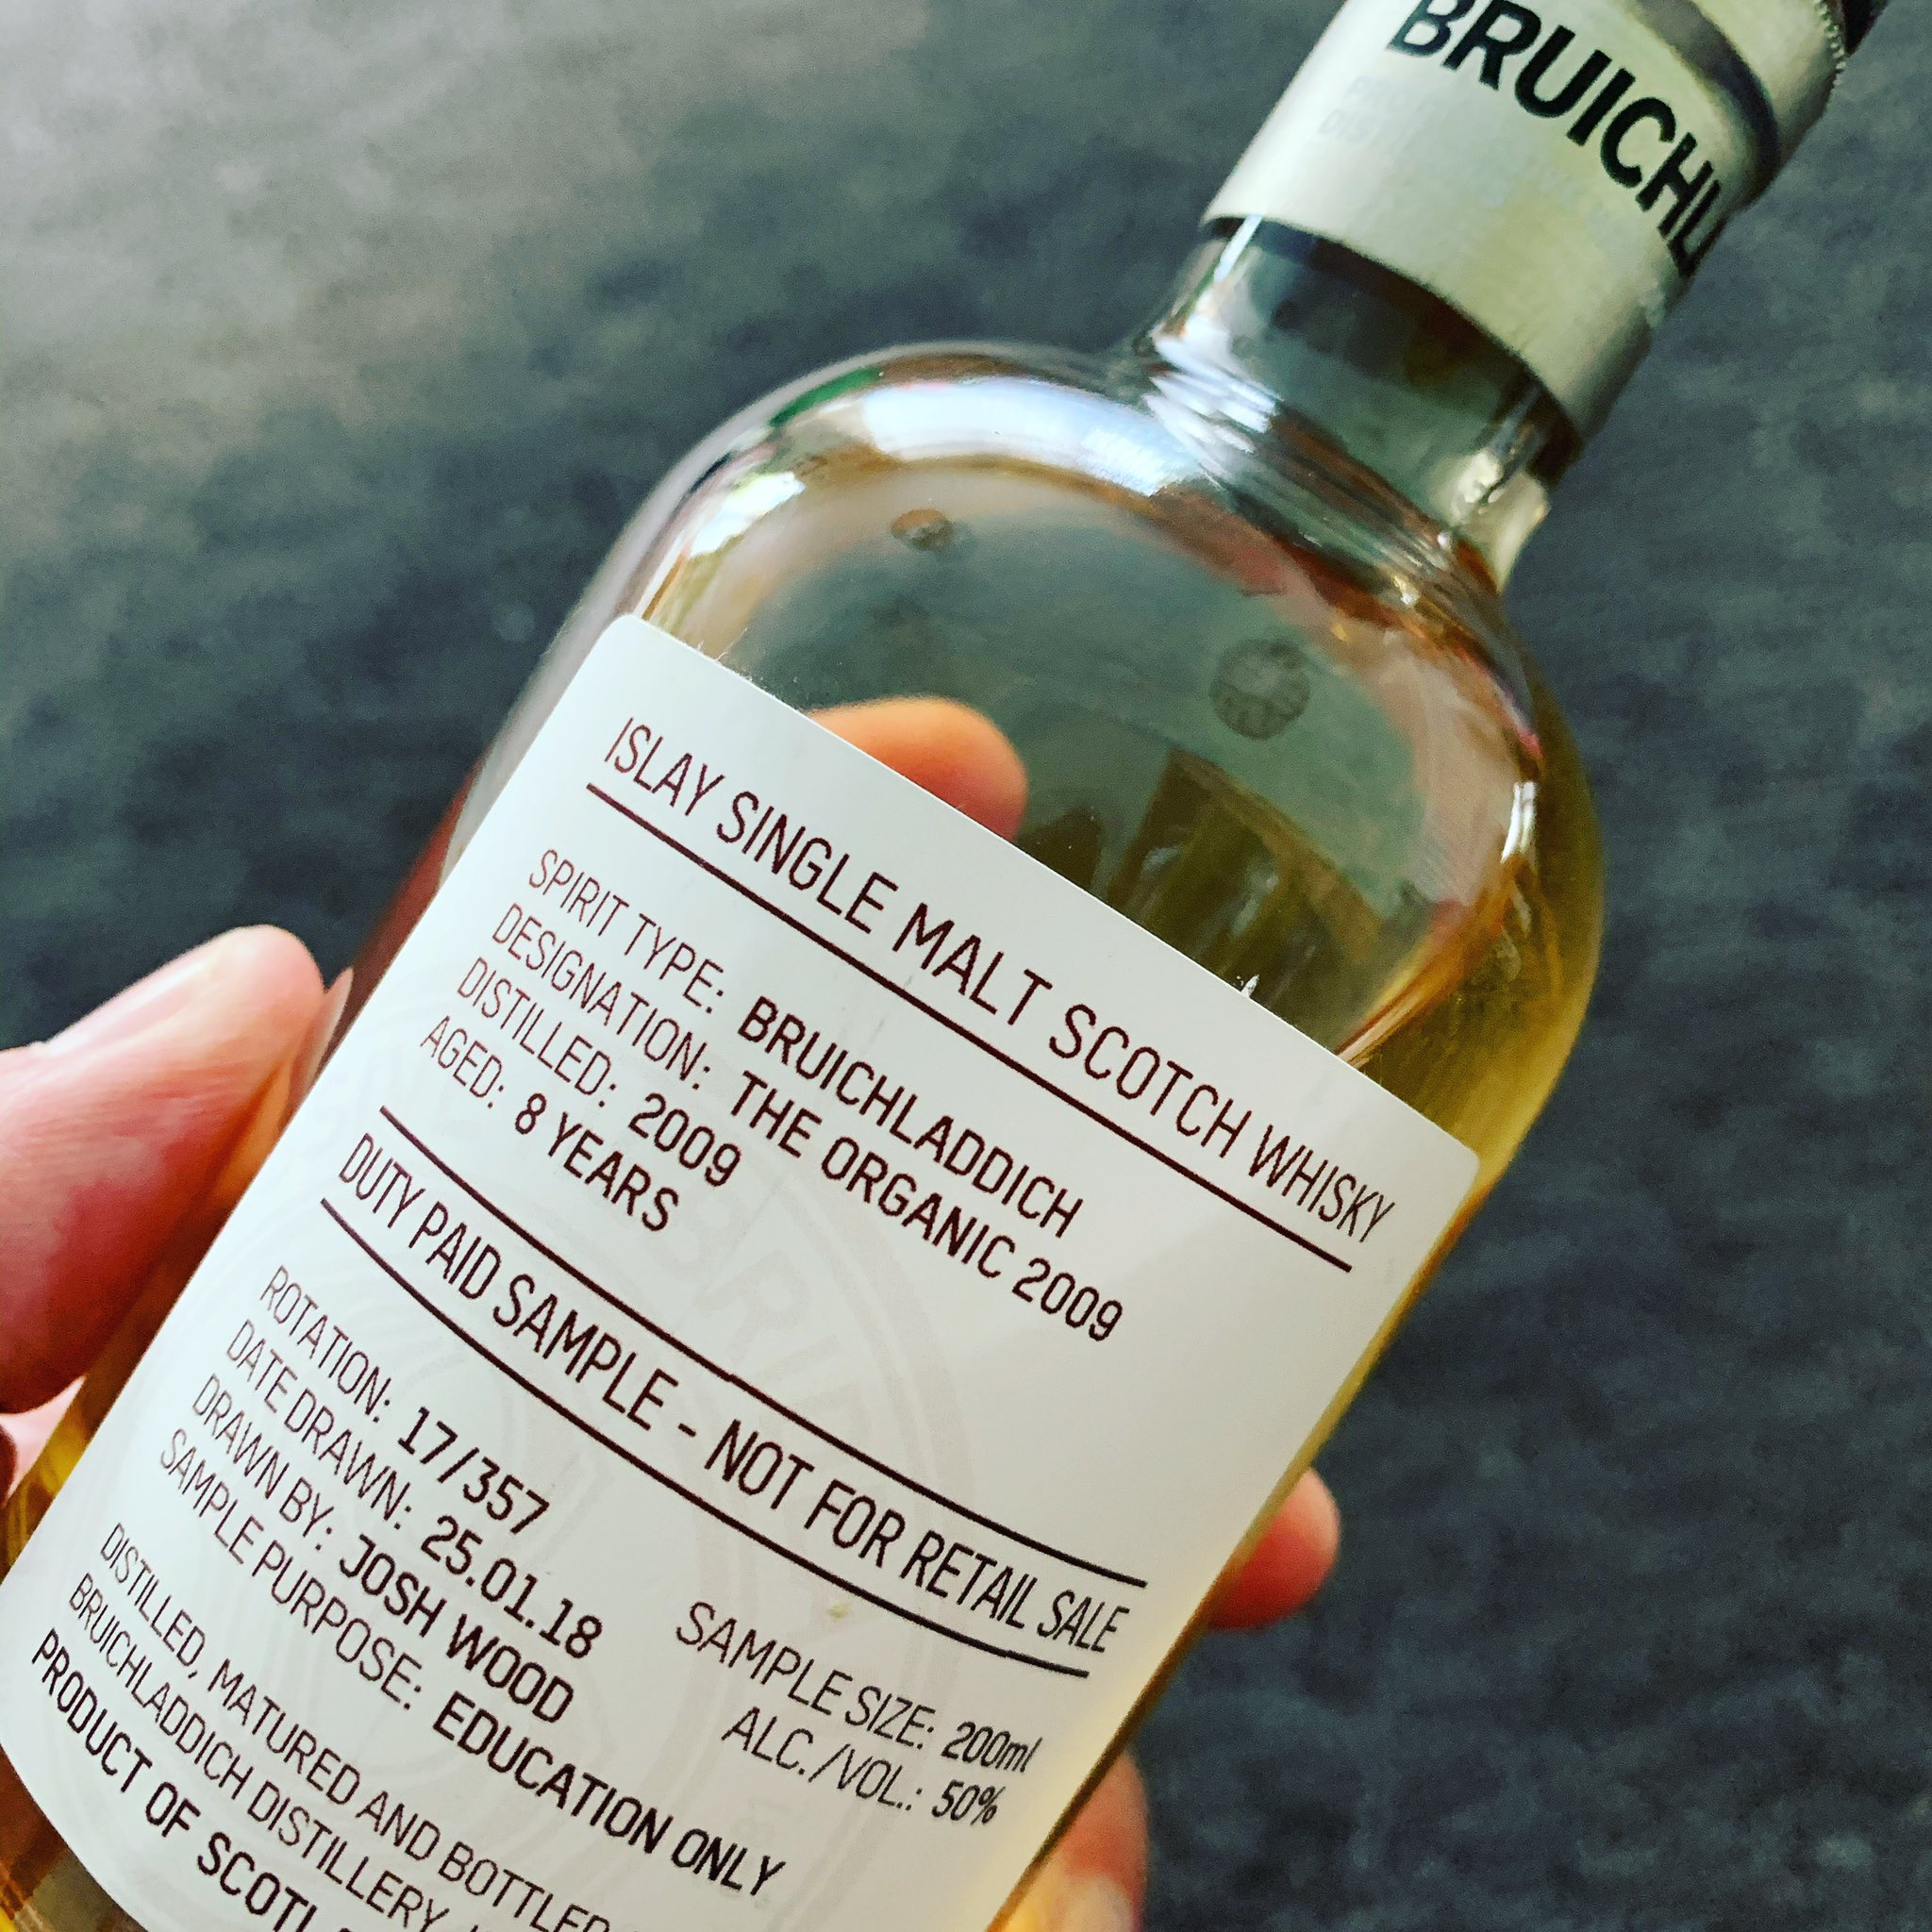 Happy @Bruichladdich day #feisile2020 https://t.co/lkQiQFZBOU